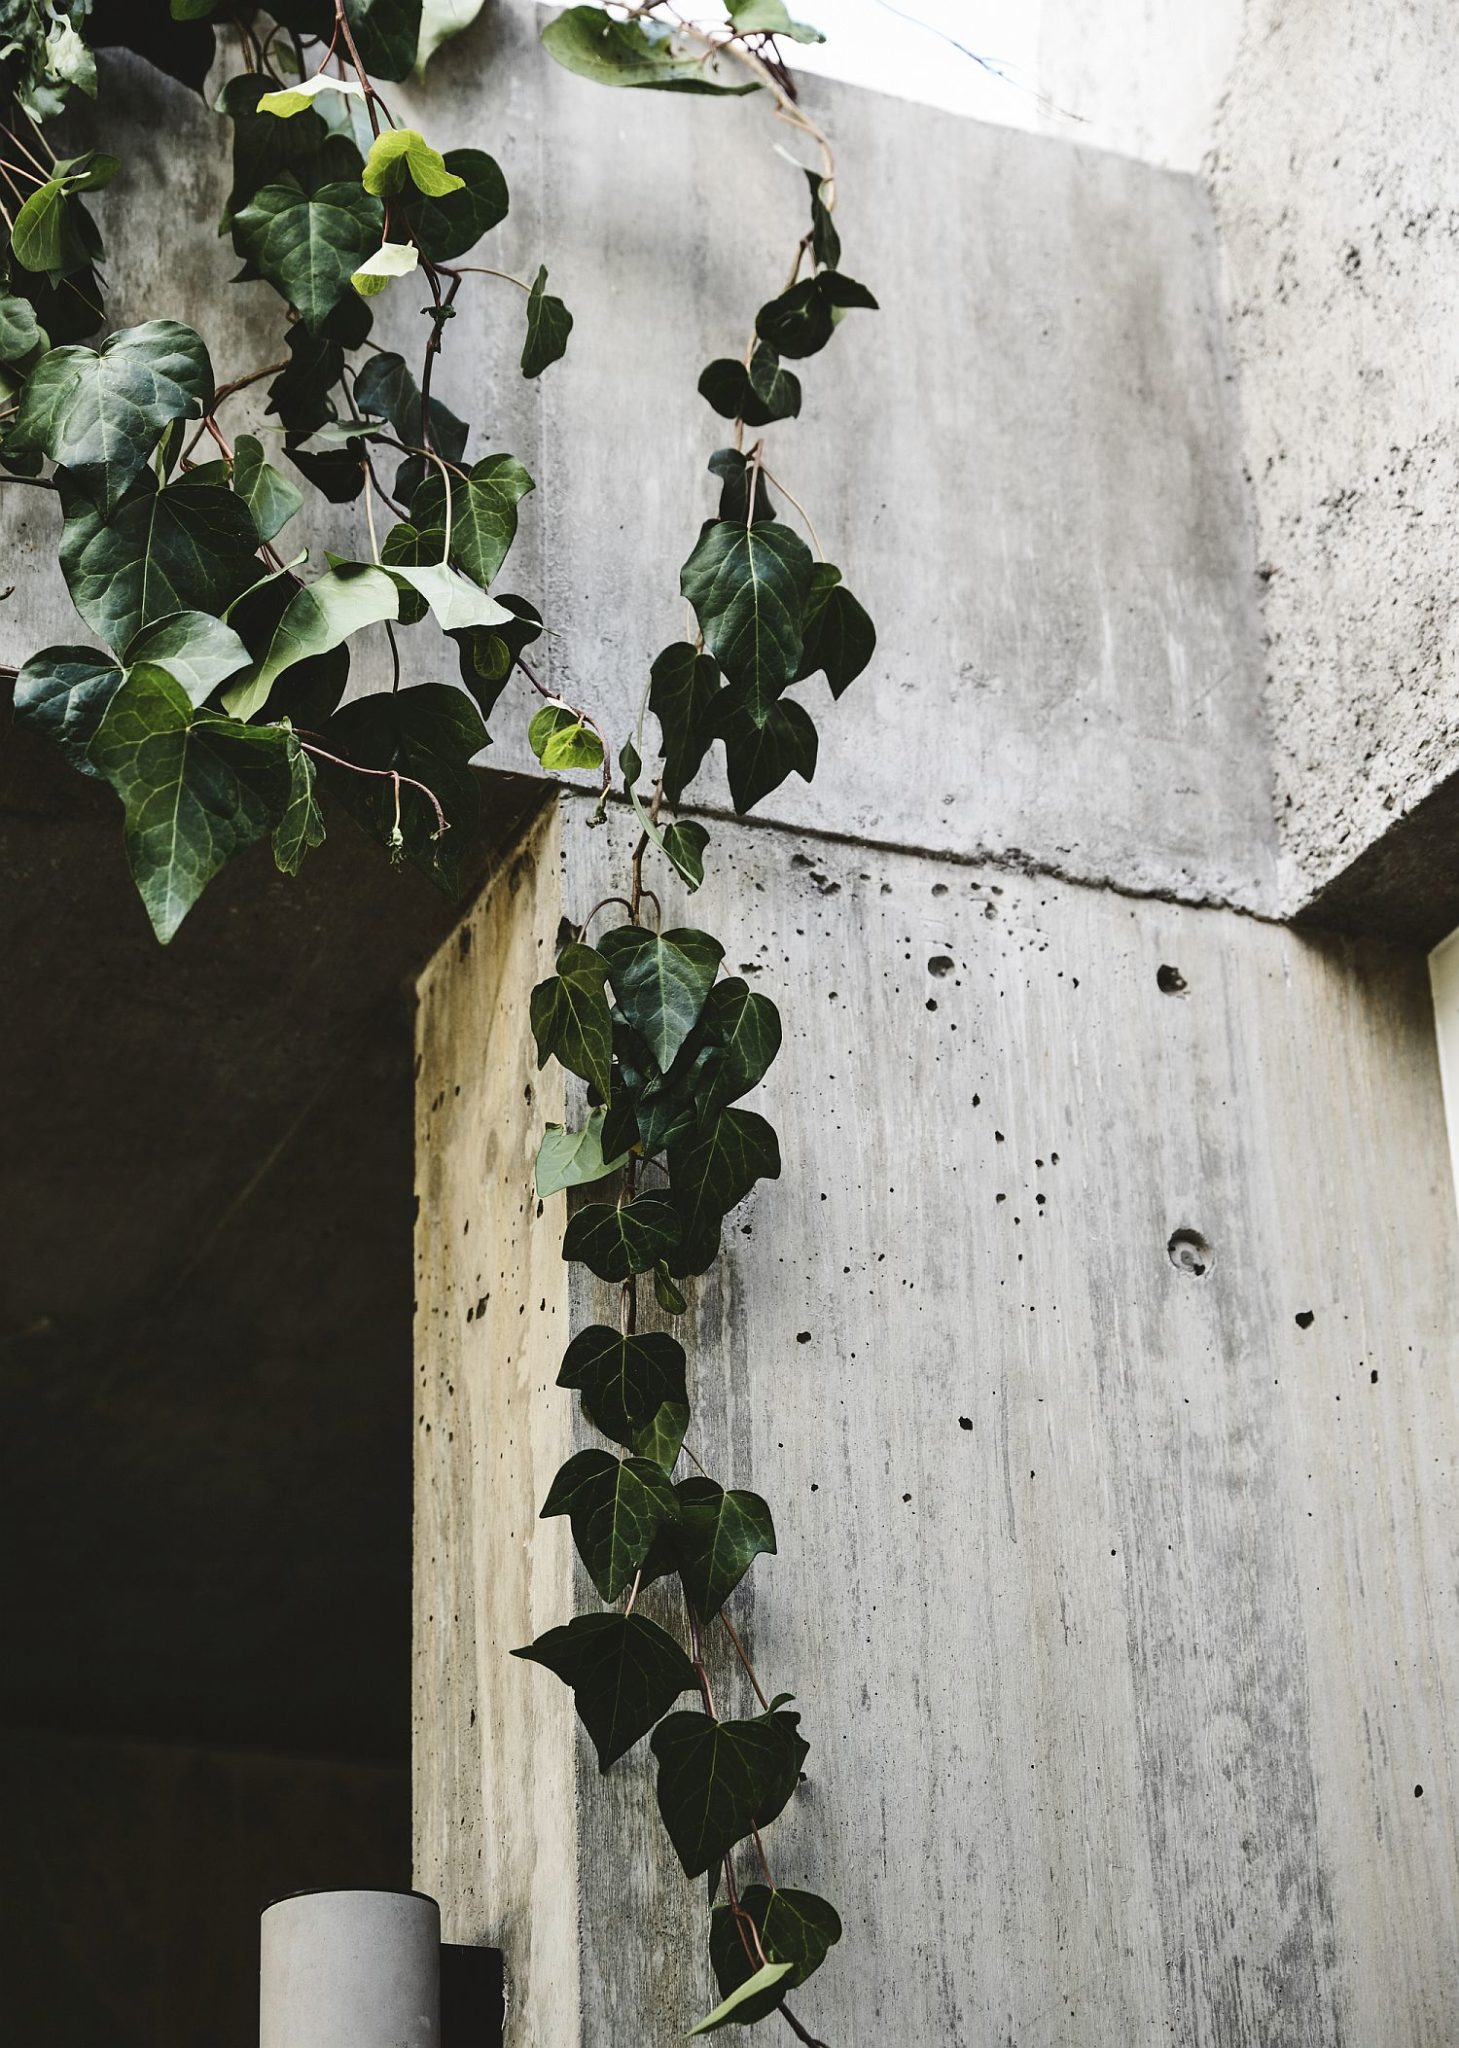 Hanging plants next to concrete walls create an Arcadian setting of sorts